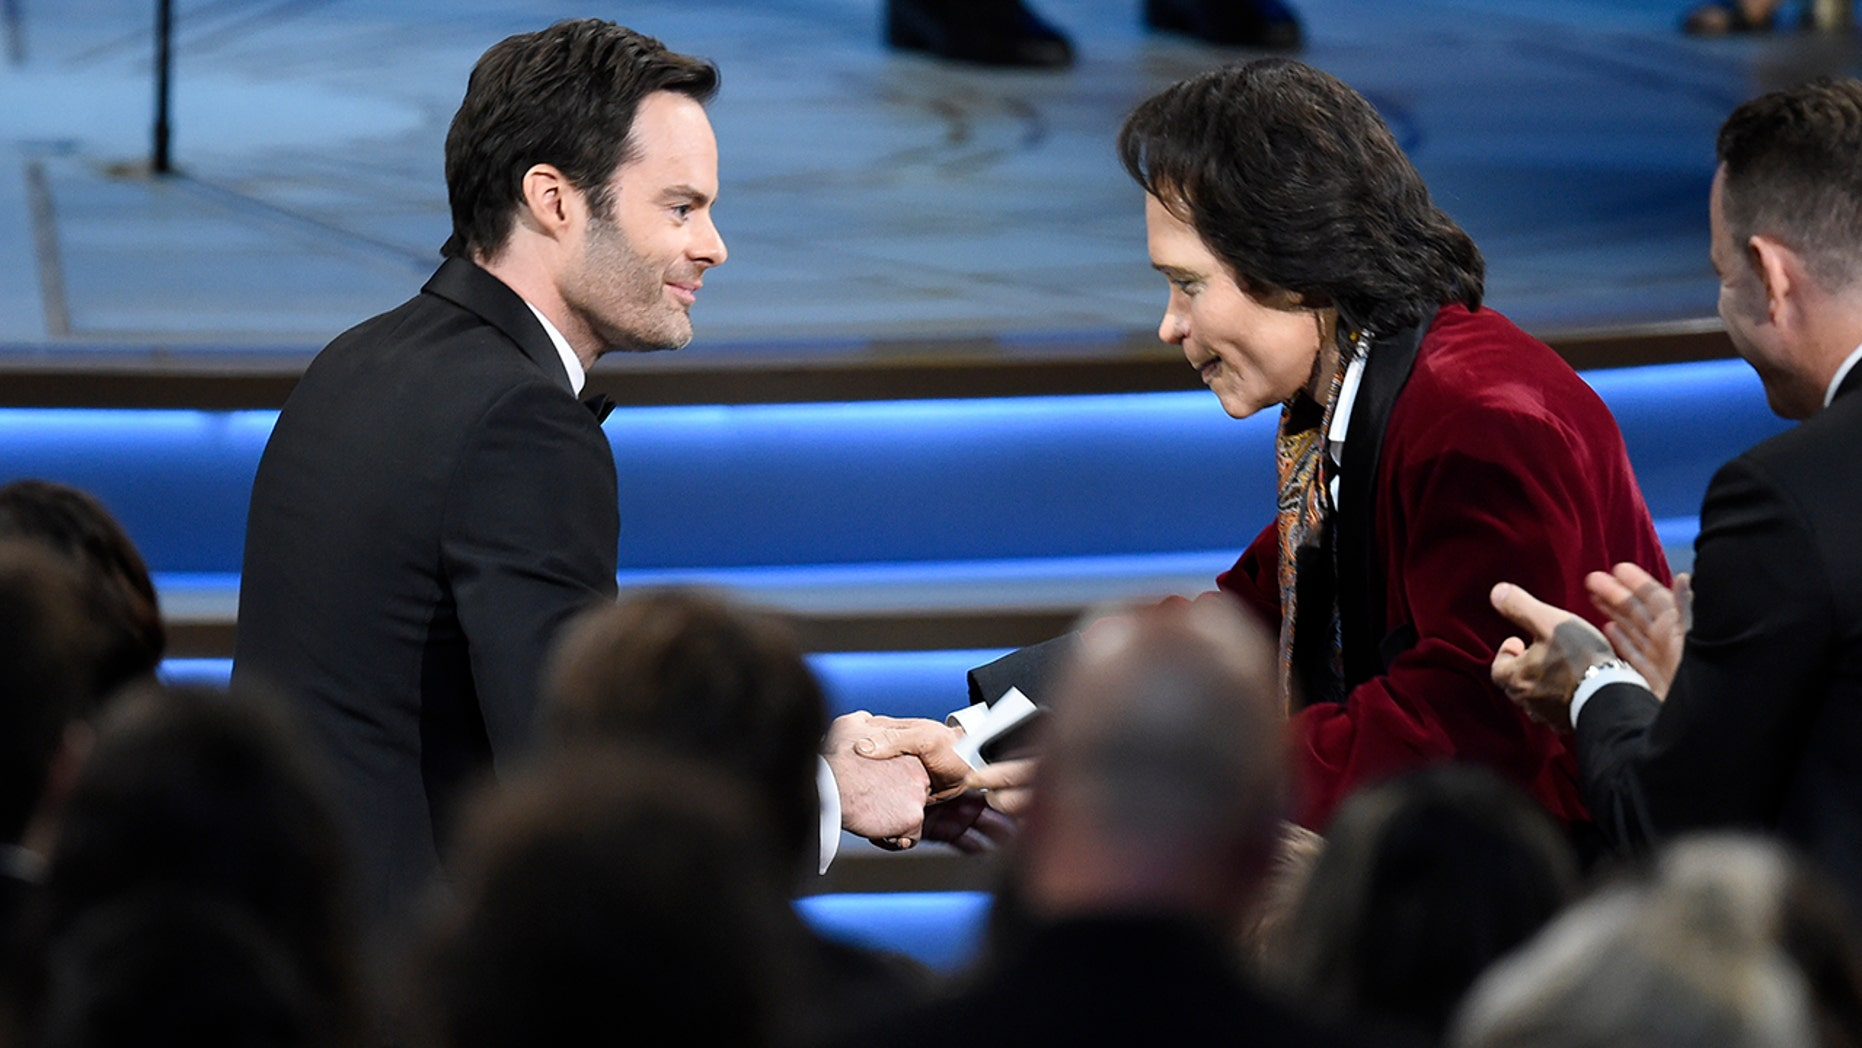 """Teddy Perkins, right, congratulates Bill Hader as he gets ready to walk on stage to accept the award for outstanding lead actor in a comedy series for """"Barry"""" at the 70th Primetime Emmy Awards."""